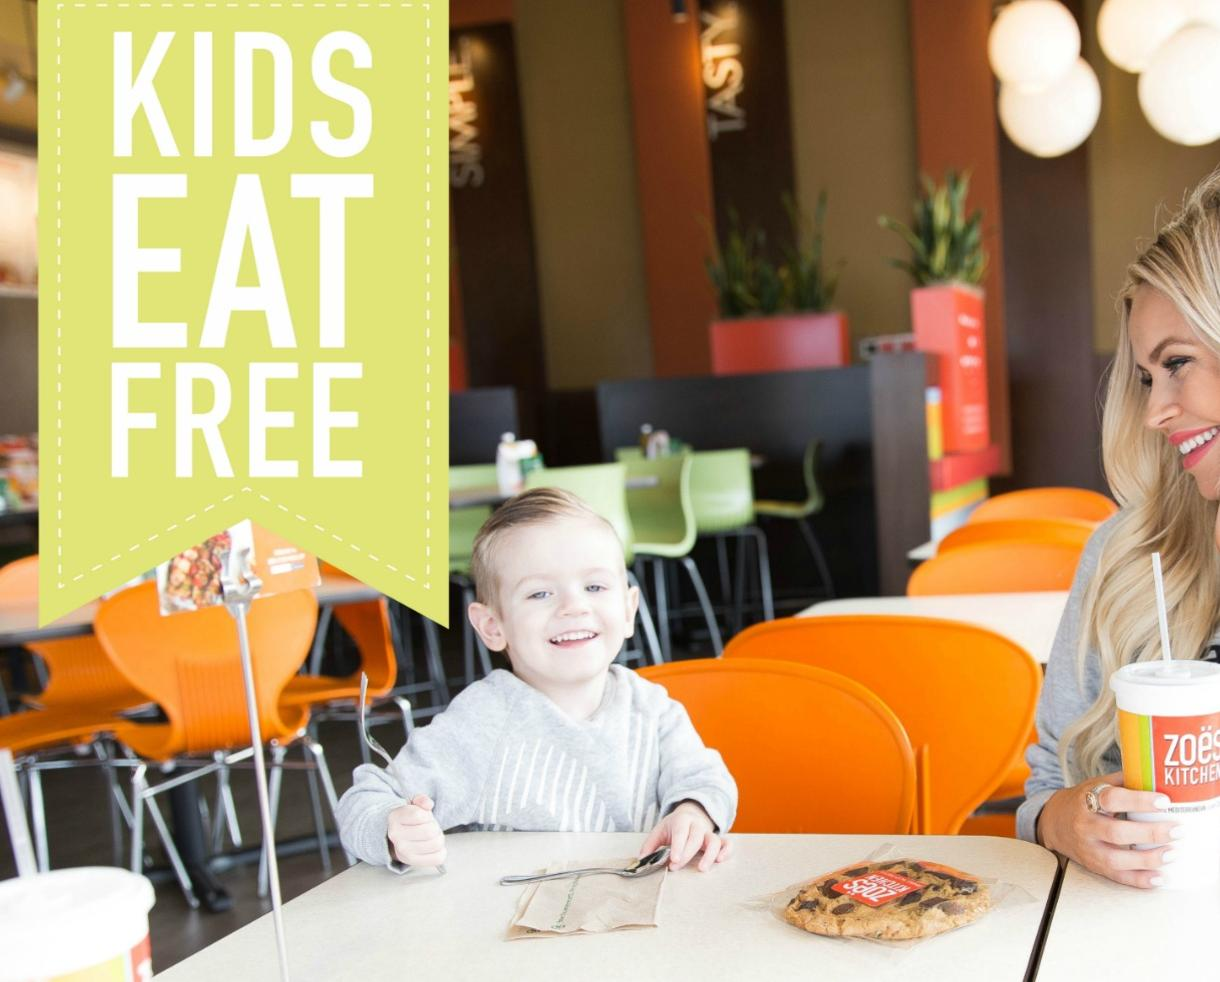 FREE Kid's Meal With the Purchase of a Regular Entrée at Zoës Kitchen